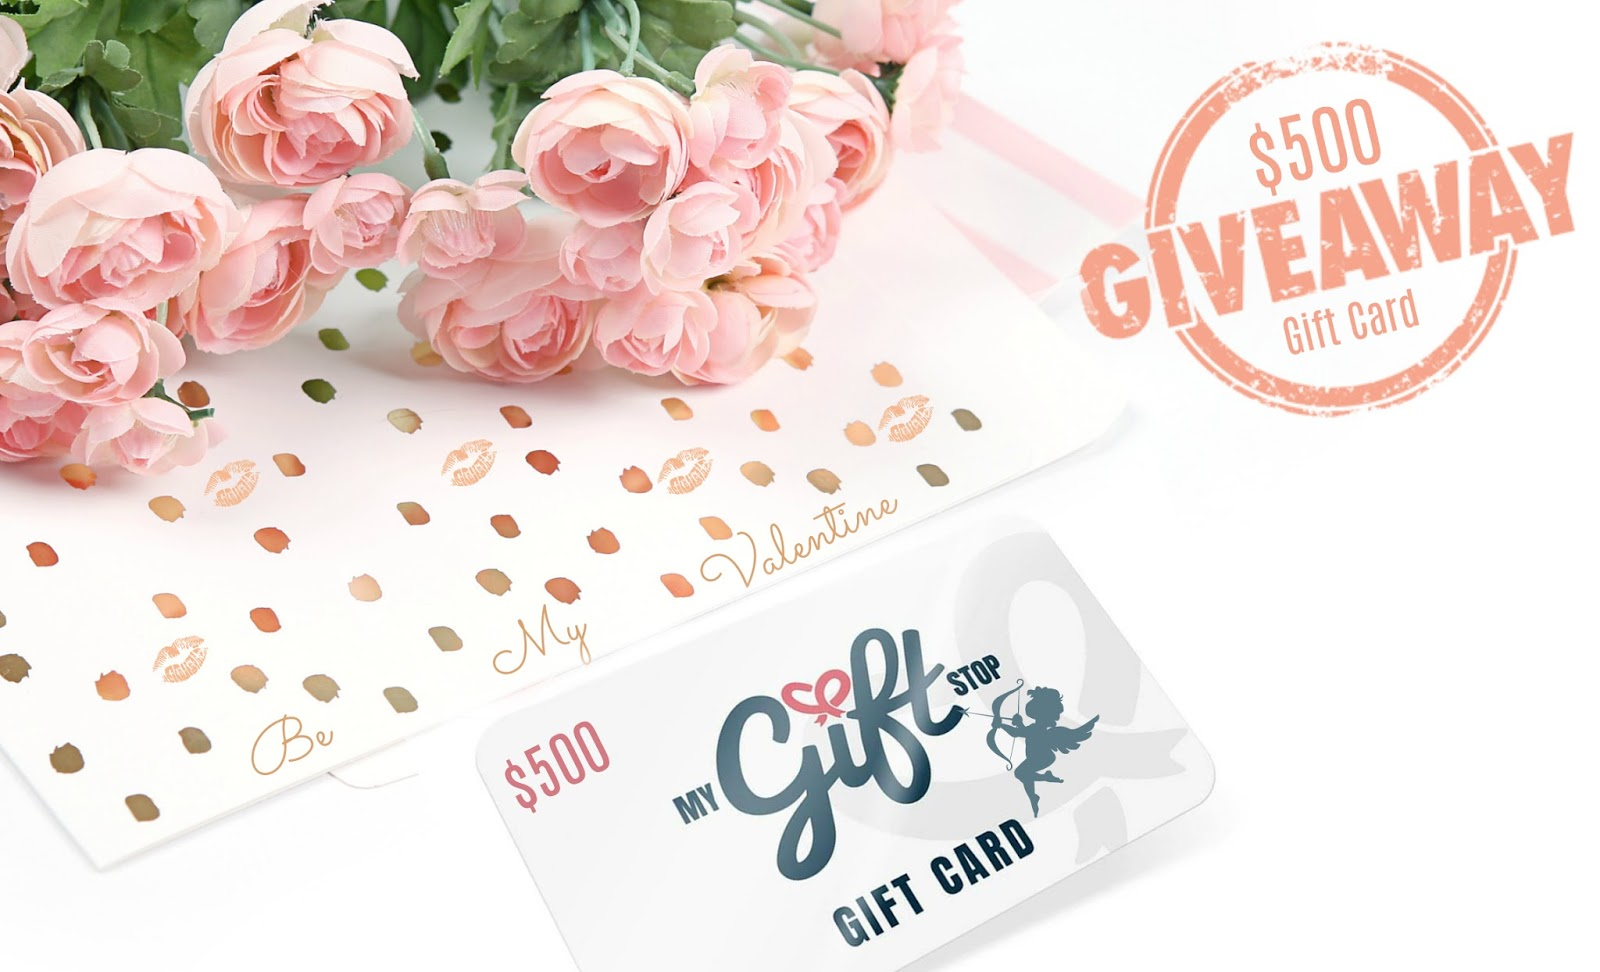 Love Is In The Air And So Is Your Chance To Win A $500 Gift Card From My Gift Stop By Barbies Beauty Bits